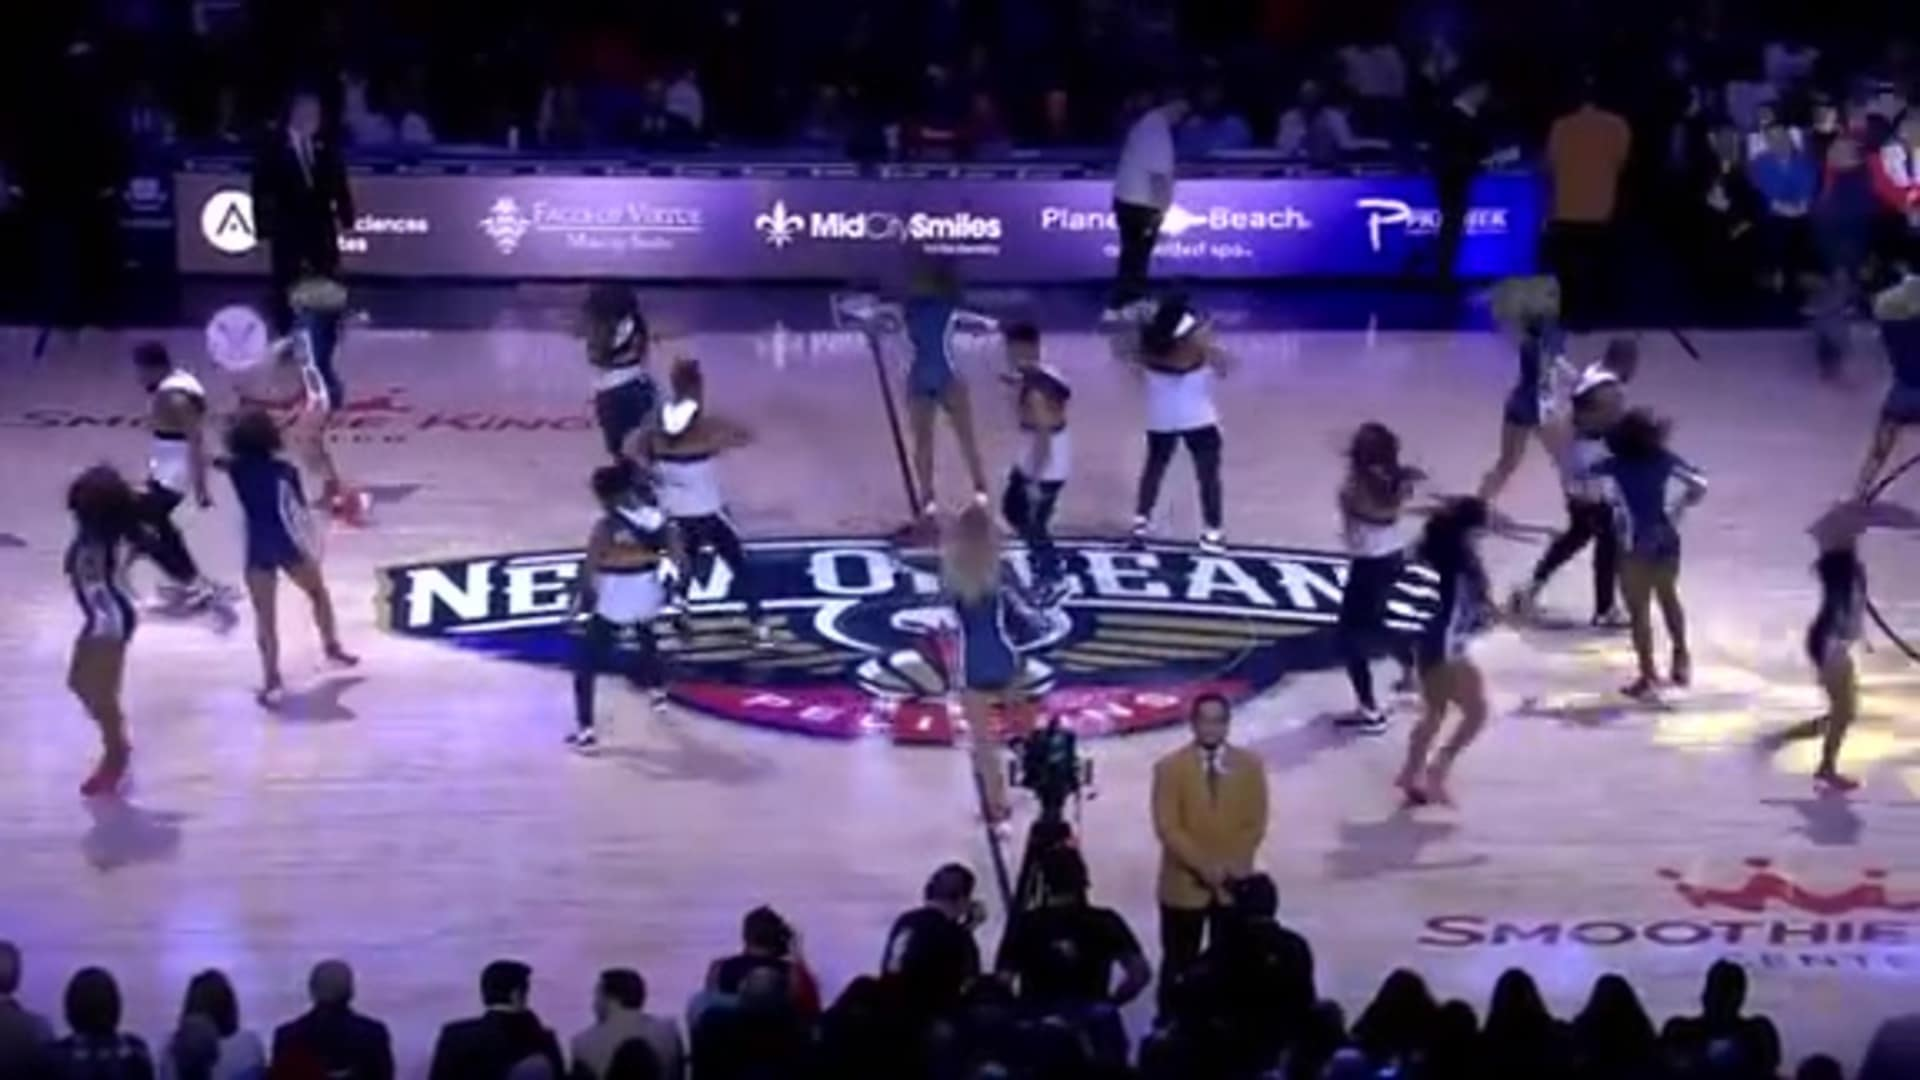 Entertainment: Pelicans Dance Team 3rd quarter performance - January 24 vs. Denver Nuggets